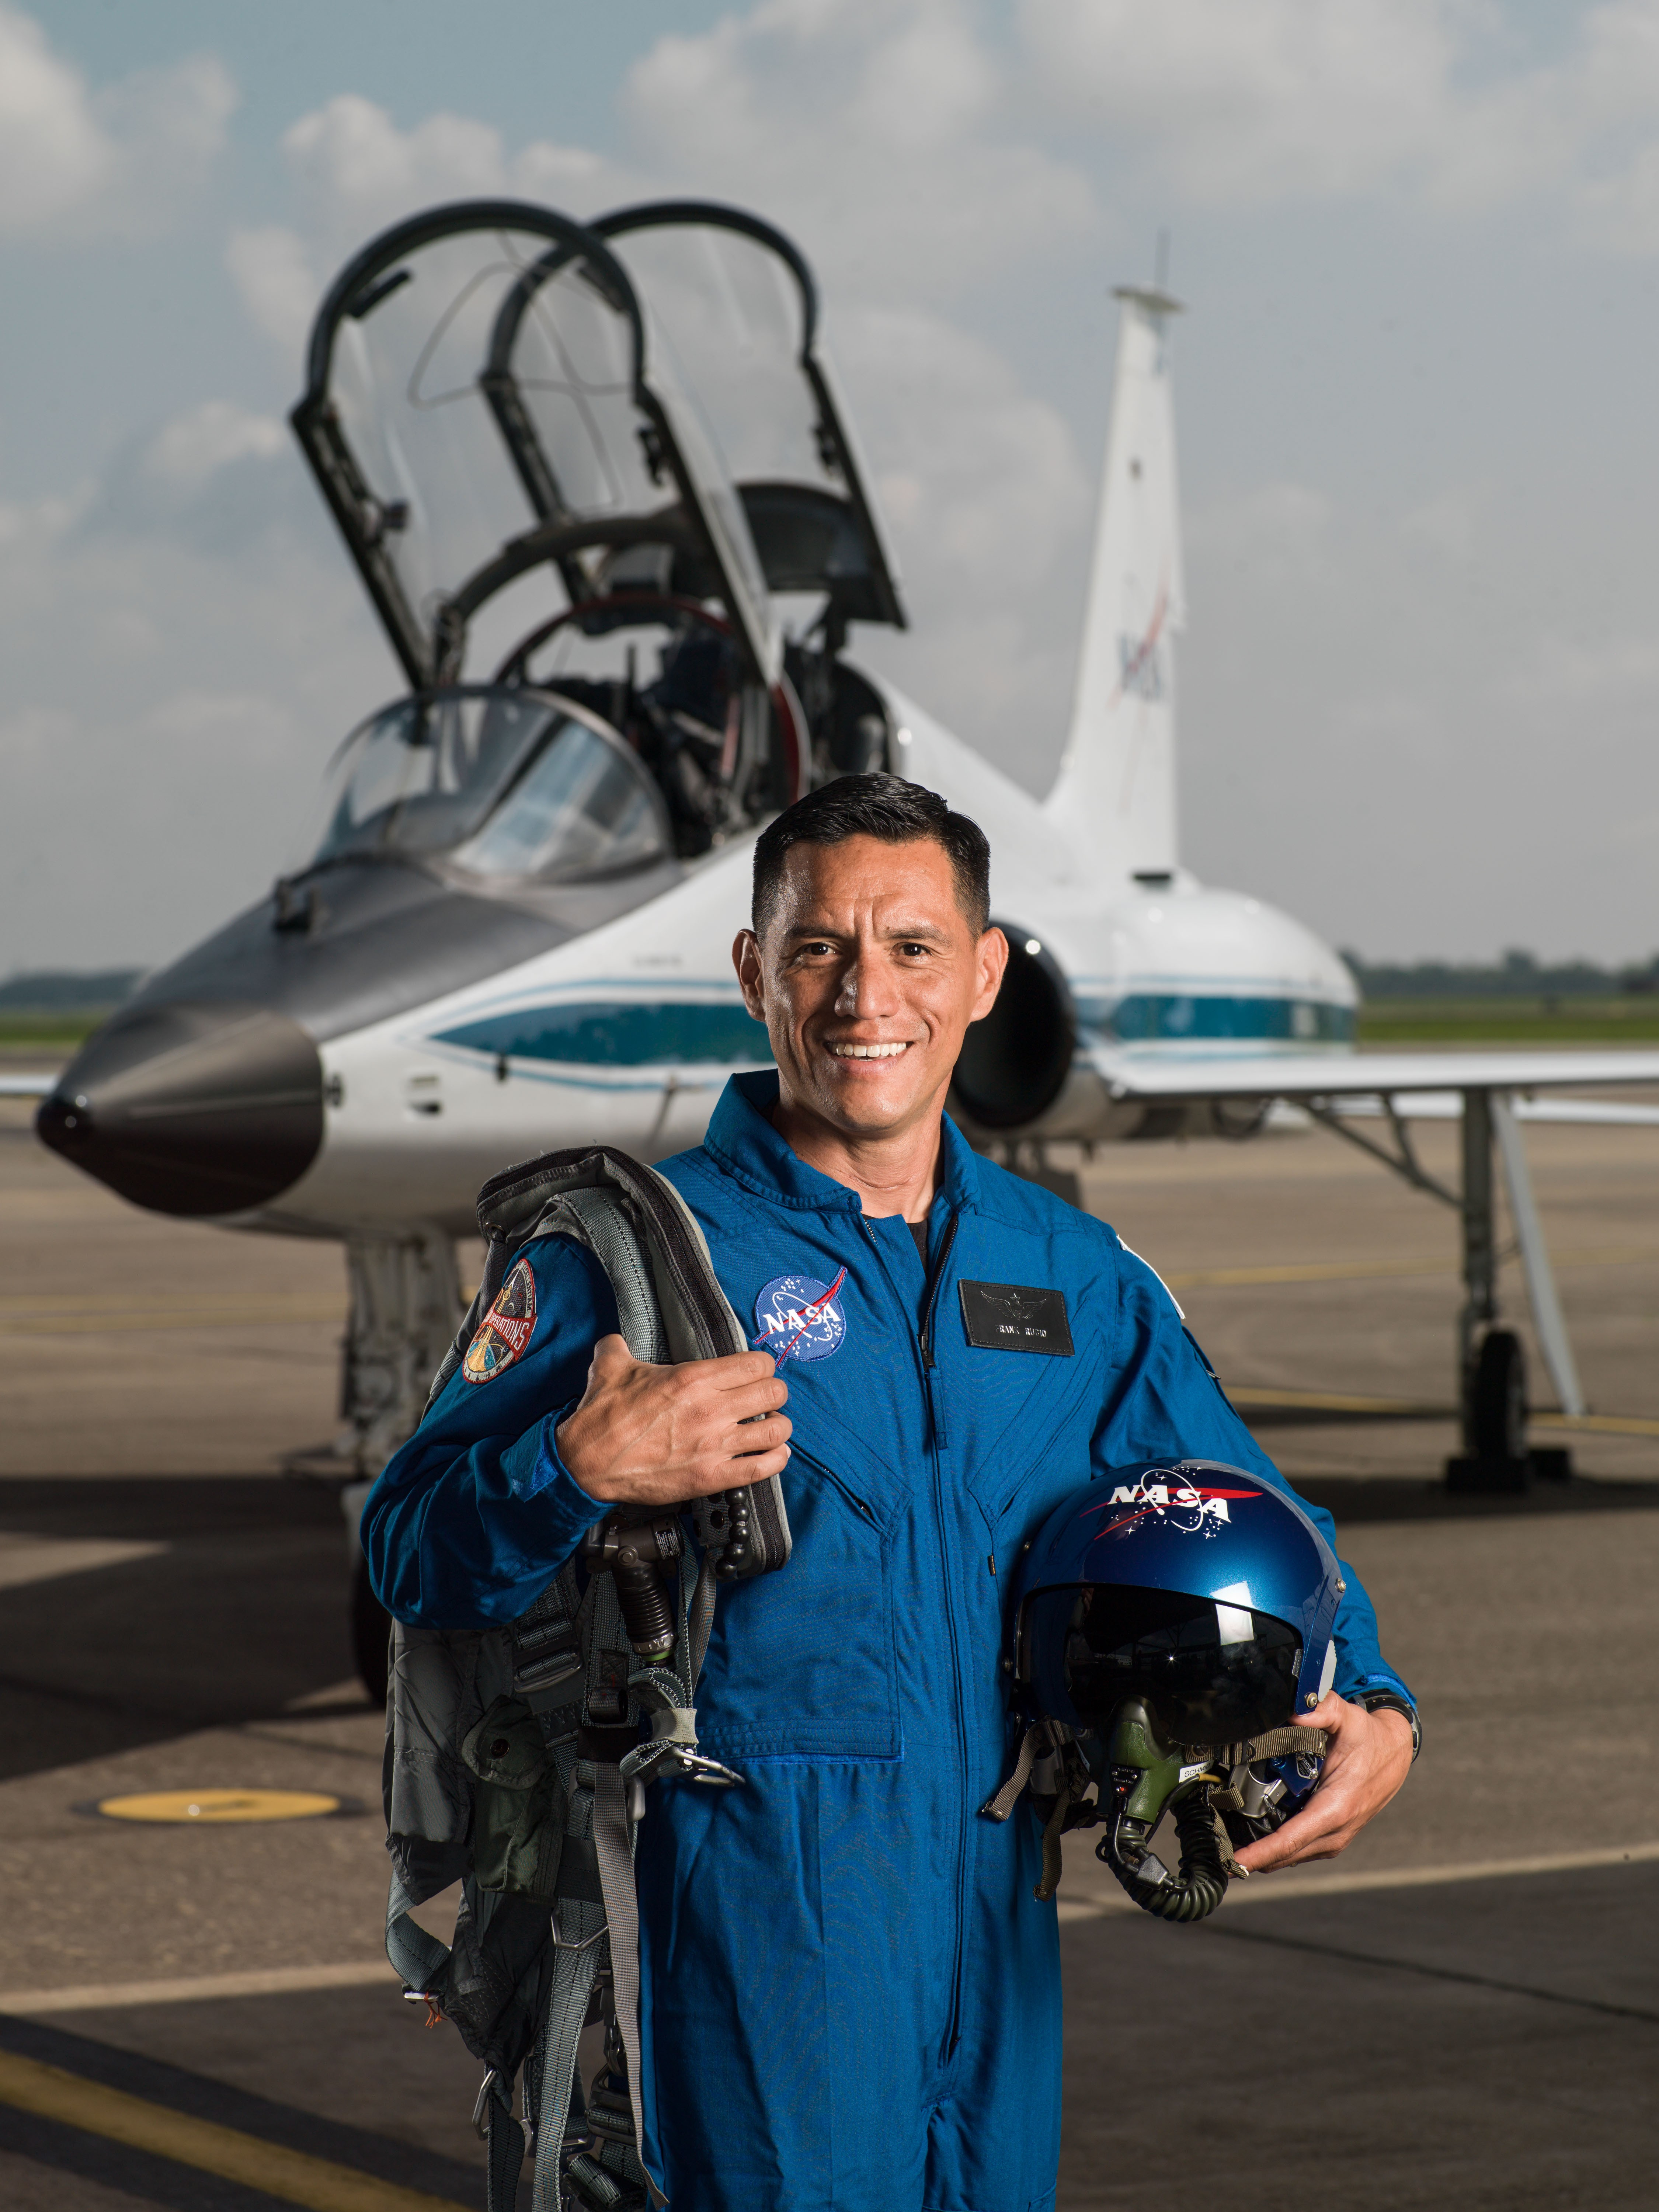 Army doctor selected for NASA astronaut training | Article ...